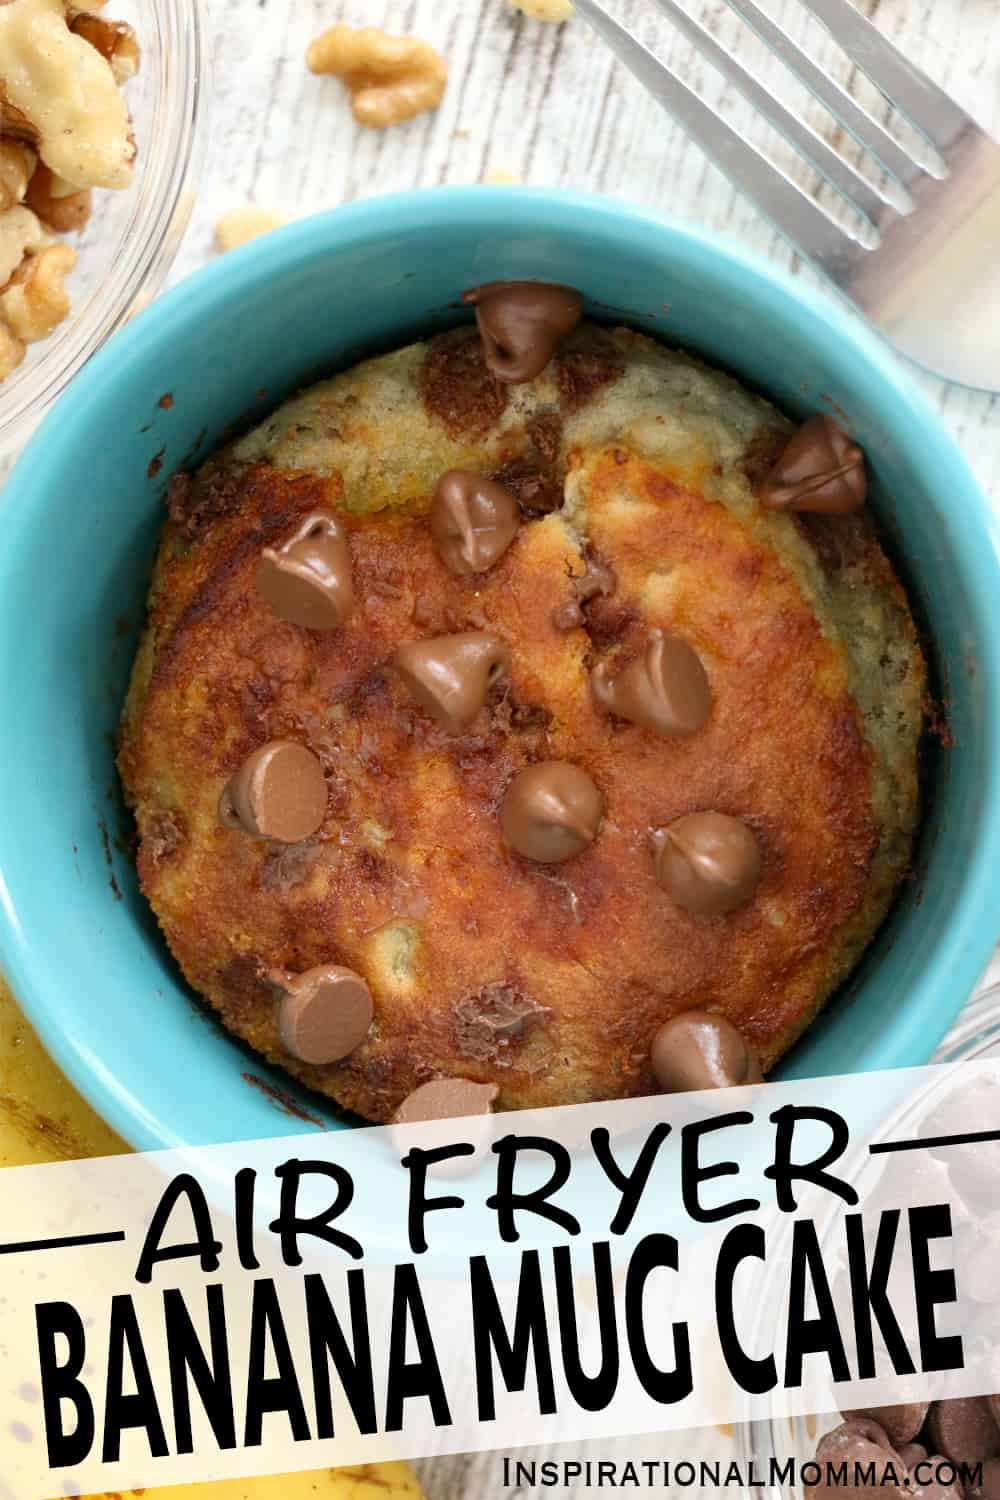 This Air Fryer Banana Mug Cake is a quick, easy dessert that is perfectly baked every time.  Moist, packed with flavor, and deliciously sweet. #inspirationalmomma #airfryerbananamugcake #bananamugcake #mugcake #mugcakerecipes #airfryermugcake #airfryermugcakerecipes